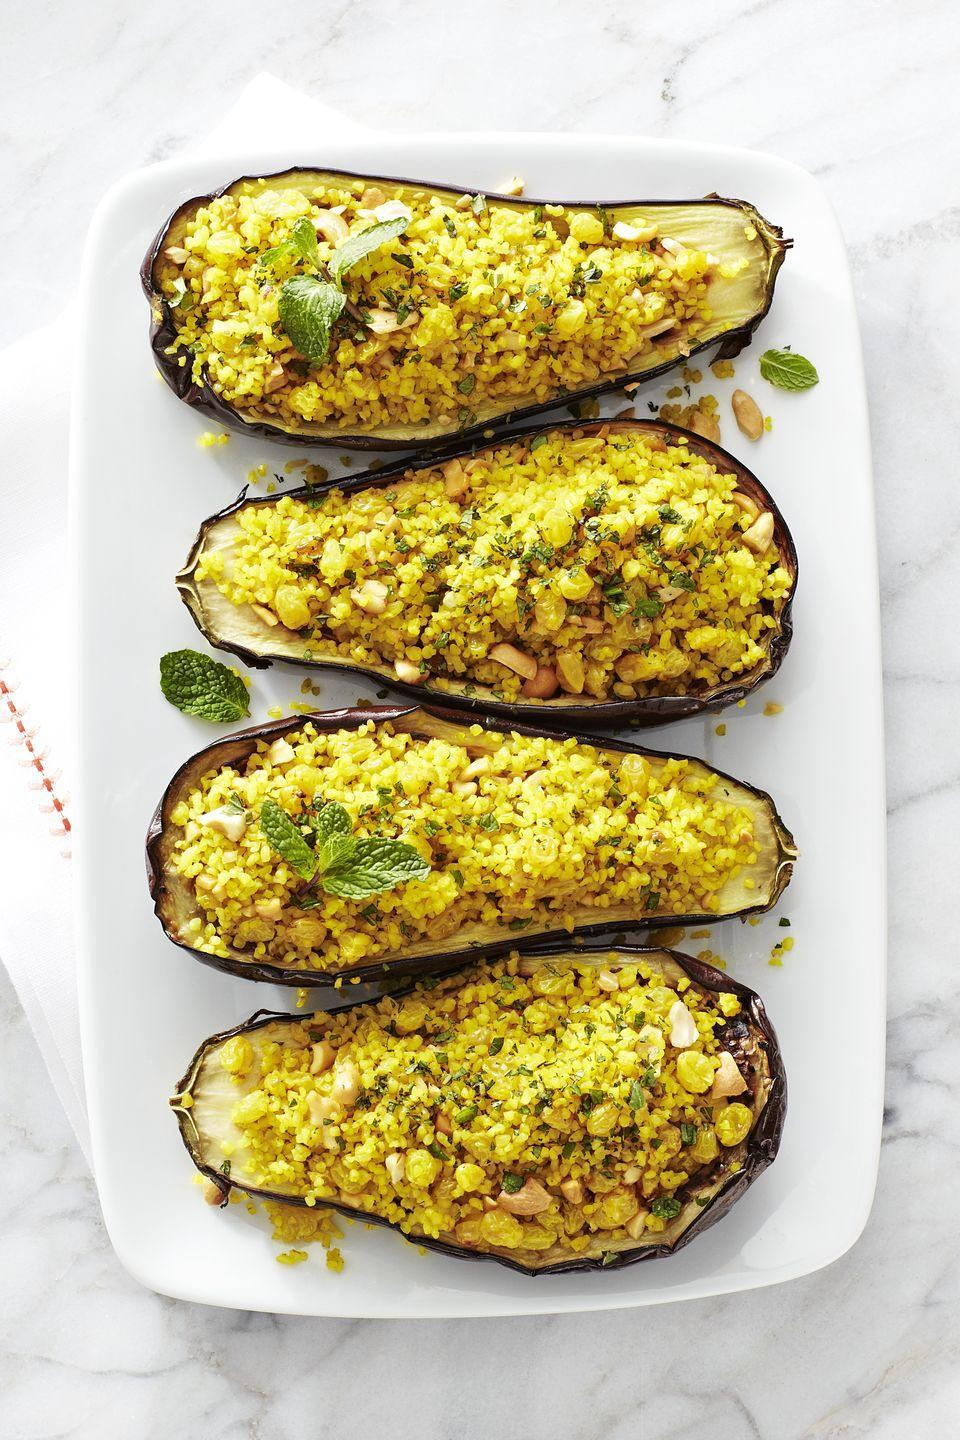 "<p>Eggplants are the perfect edible bowls for all kinds of fillings, but we're digging this vegetarian curry situation.</p><p><em><a href=""https://www.goodhousekeeping.com/food-recipes/a16733/bulgur-cashew-stuffed-eggplant-recipe-ghk0215/"" rel=""nofollow noopener"" target=""_blank"" data-ylk=""slk:Get the recipe for Bulgur and Cashew Stuffed Eggplant »"" class=""link rapid-noclick-resp"">Get the recipe for Bulgur and Cashew Stuffed Eggplant »</a></em></p><p><strong>RELATED: </strong><a href=""https://www.goodhousekeeping.com/food-recipes/healthy/g908/vegetarian-recipes/"" rel=""nofollow noopener"" target=""_blank"" data-ylk=""slk:46 Hearty Vegetarian Recipes for the Whole Family"" class=""link rapid-noclick-resp"">46 Hearty Vegetarian Recipes for the Whole Family</a></p>"